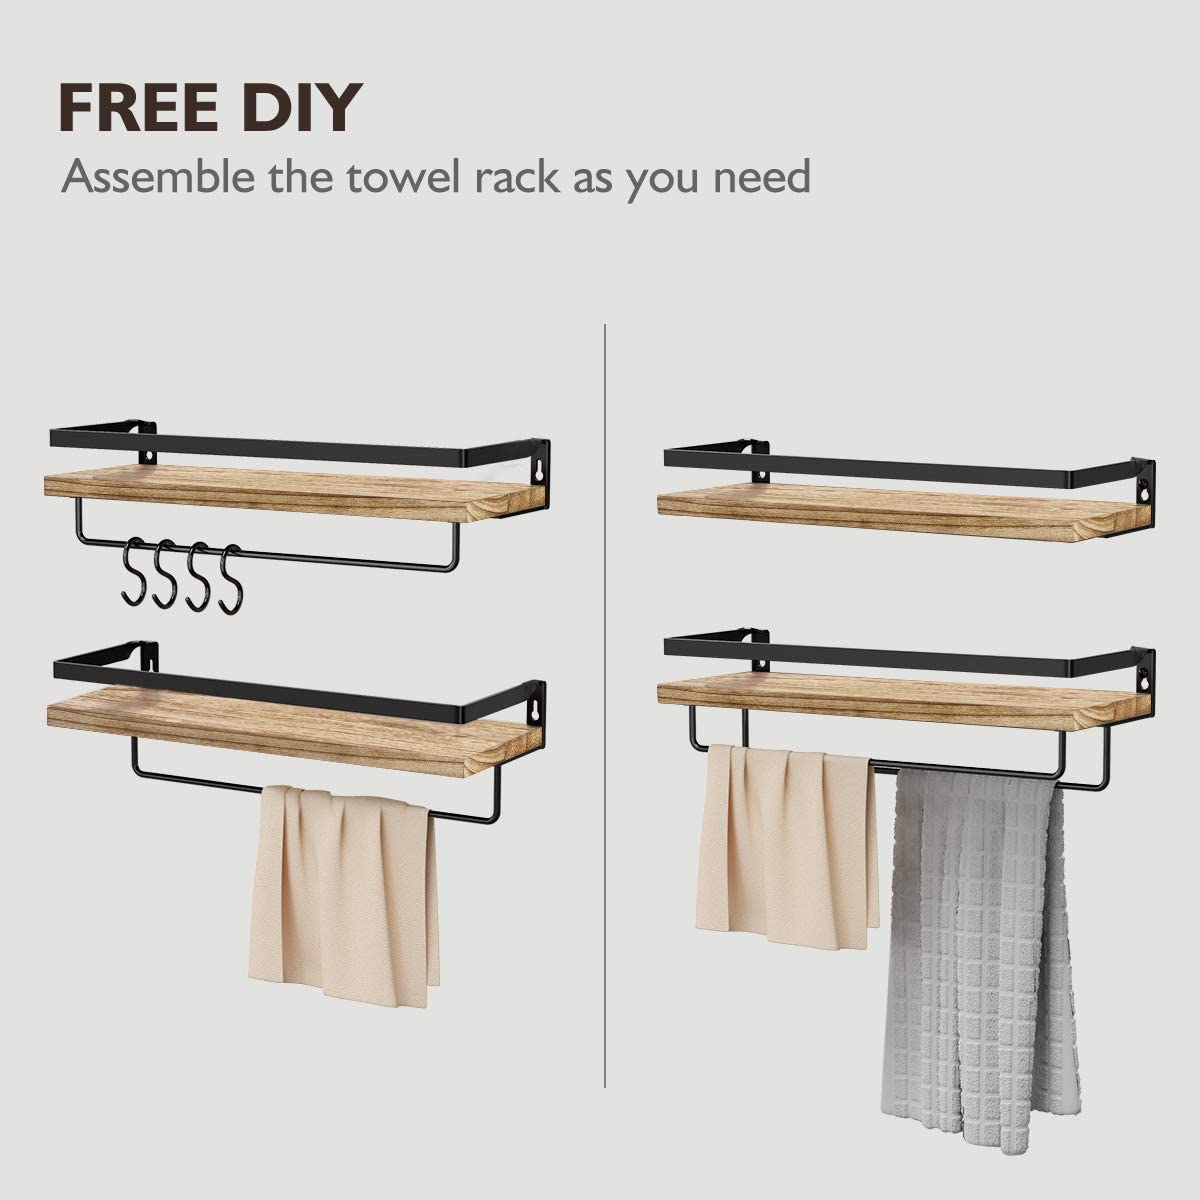 Floating Shelves Wall Mounted with 2 Towel Holders & 4 Extra Hooks, Set of 2 Wall Floating Shelf Home